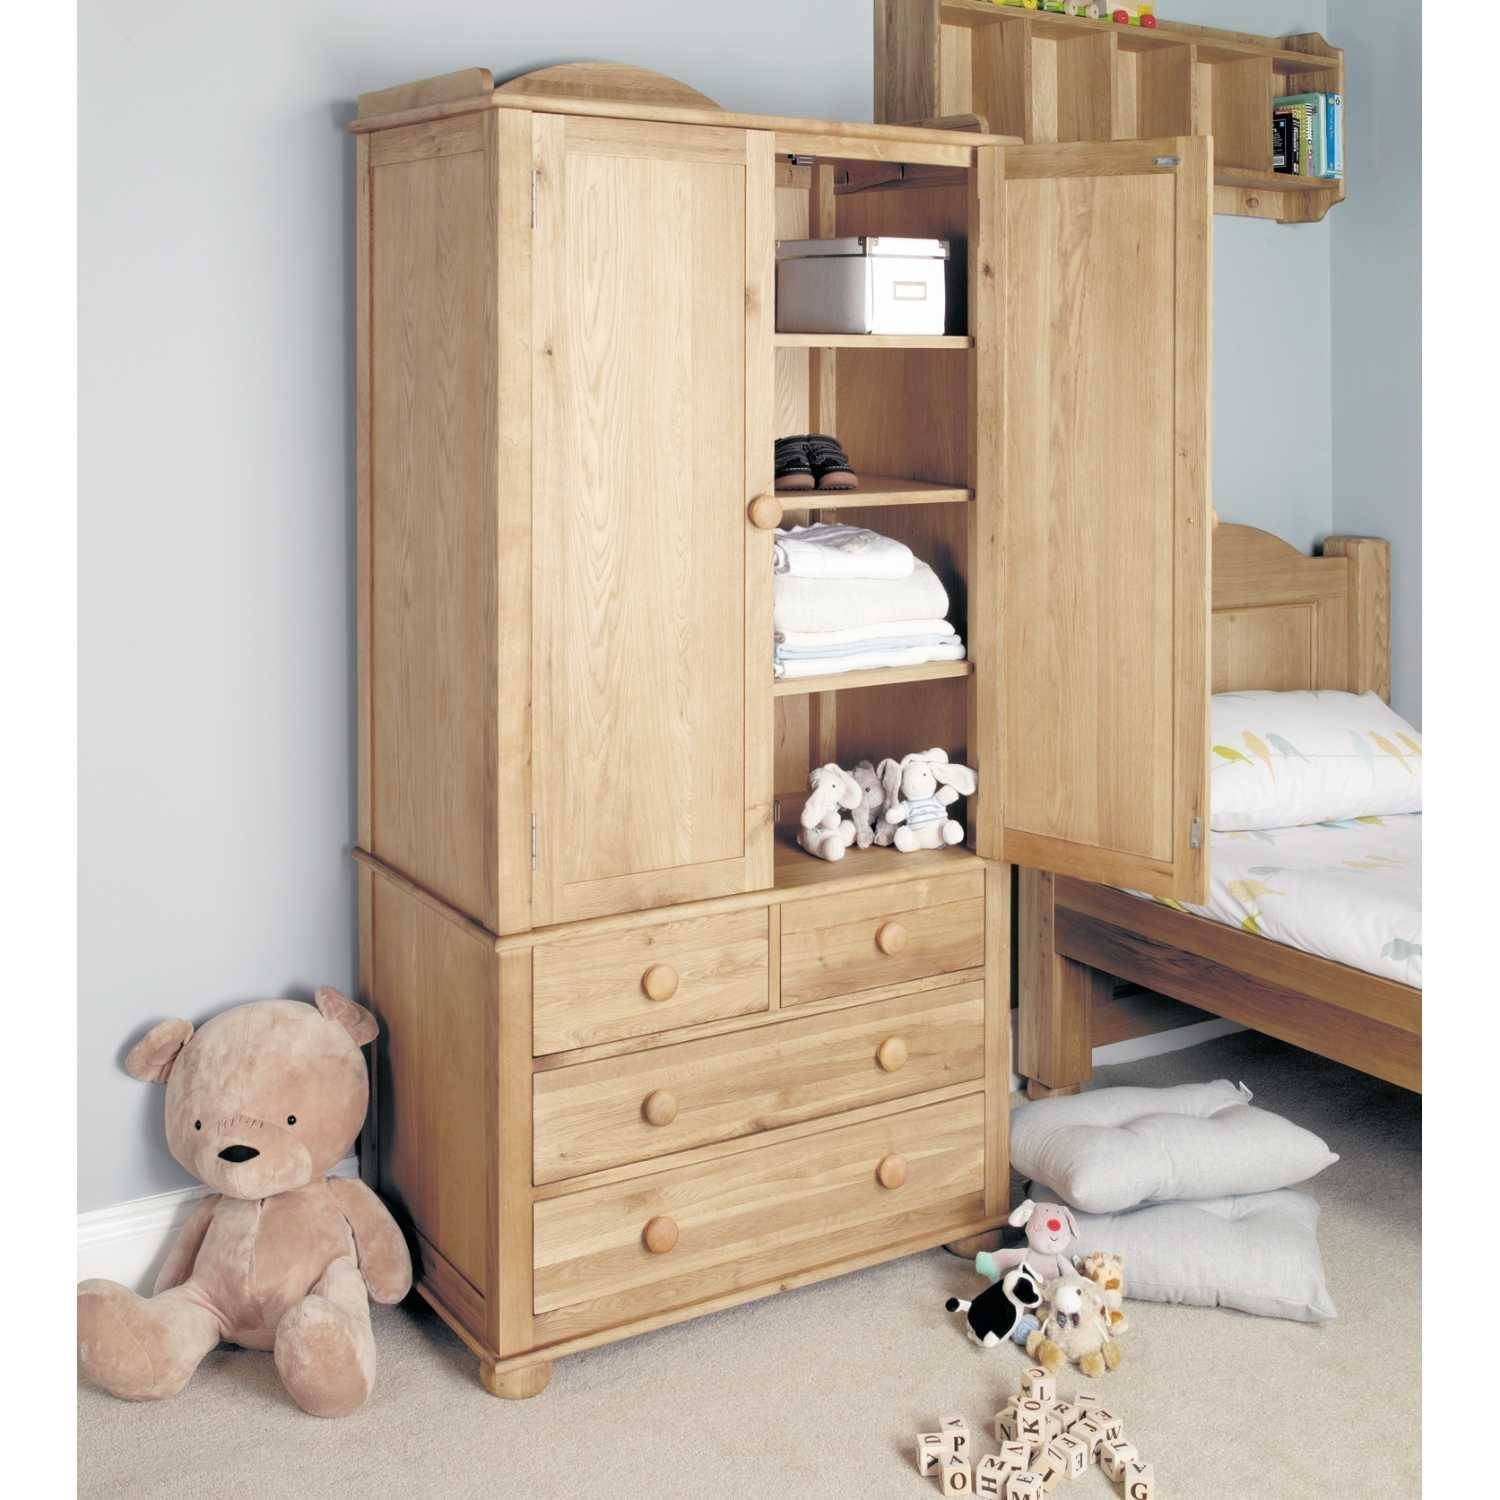 30 Best Childrens Wardrobes With Drawers And Shelves pertaining to Oak Wardrobe With Drawers and Shelves (Image 4 of 30)